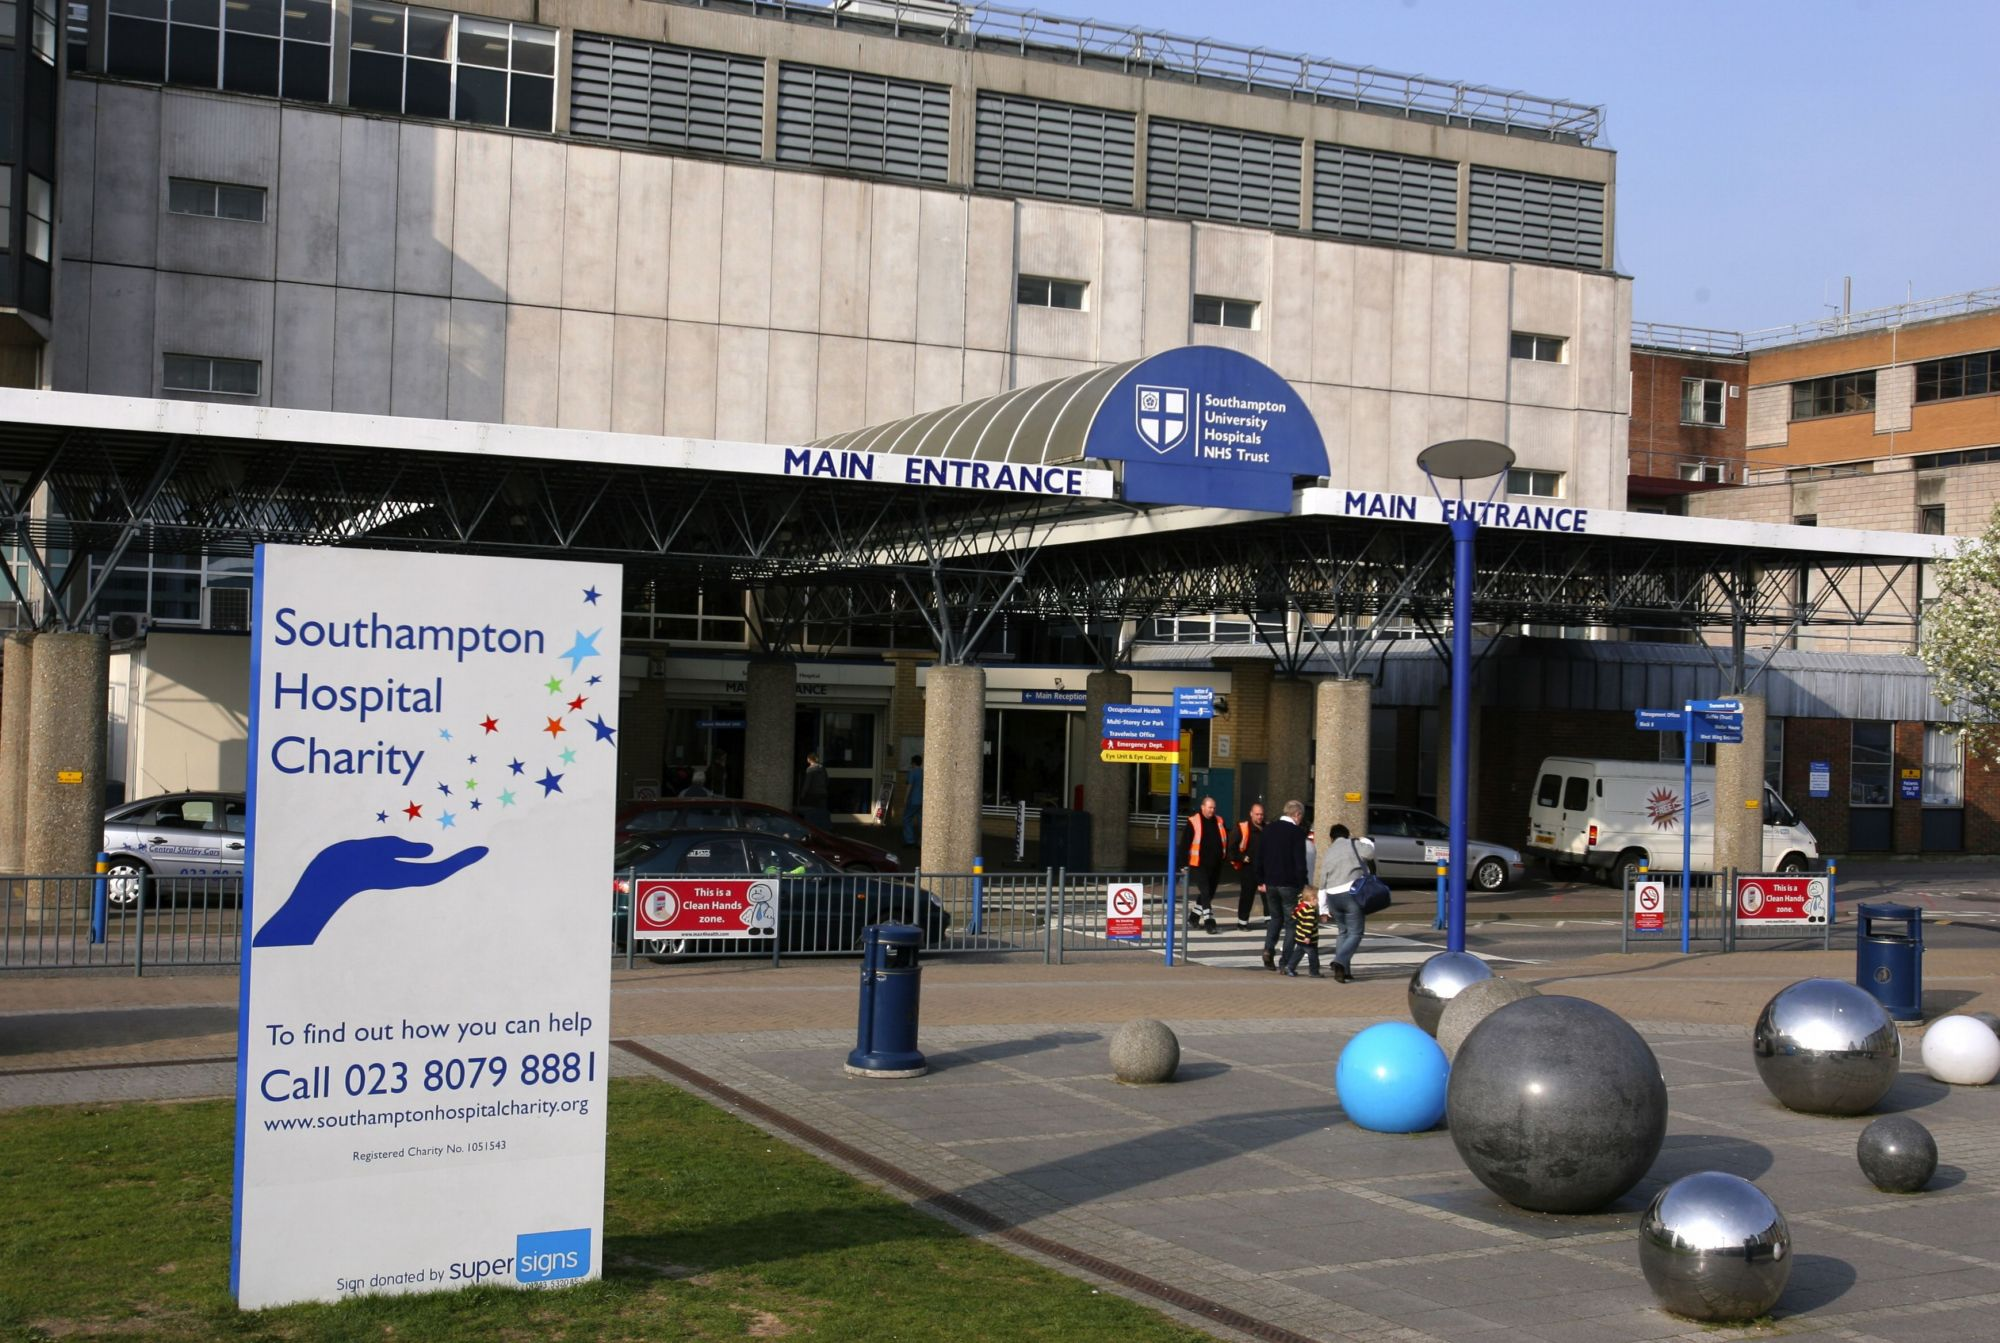 Southampton General was one of 17 hospitals to be criticised by the Care Quality Commission